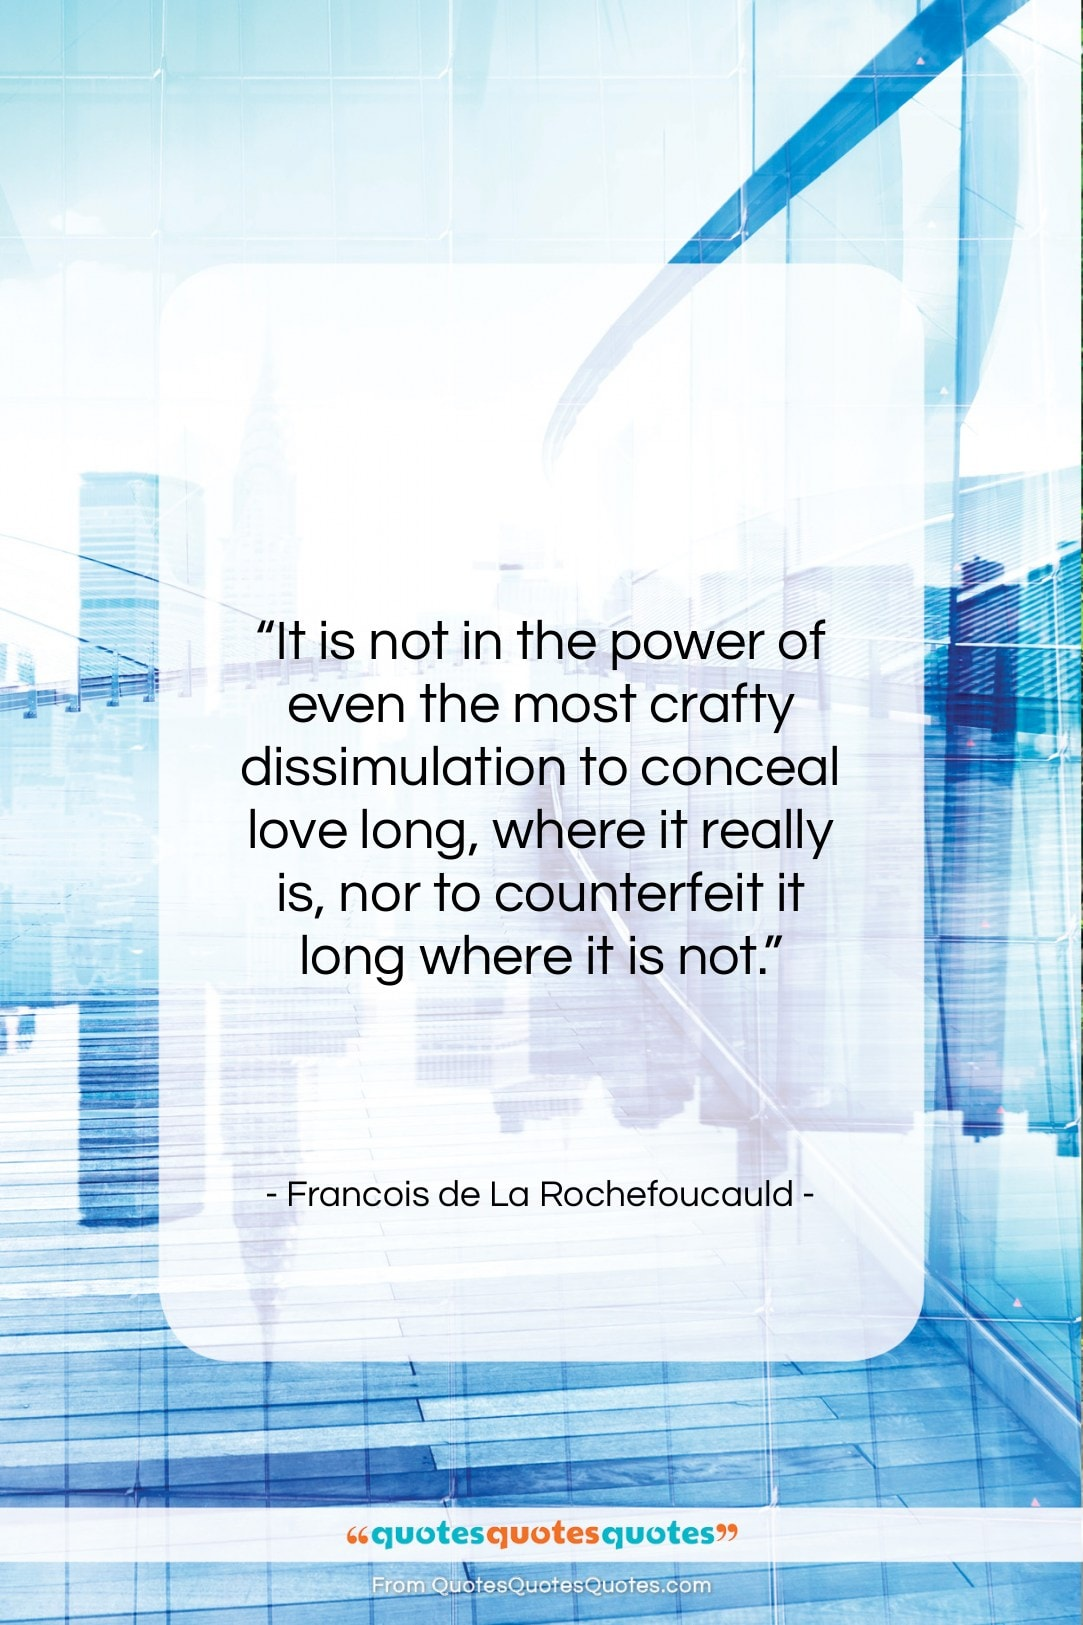 """Francois de La Rochefoucauld quote: """"It is not in the power of…""""- at QuotesQuotesQuotes.com"""